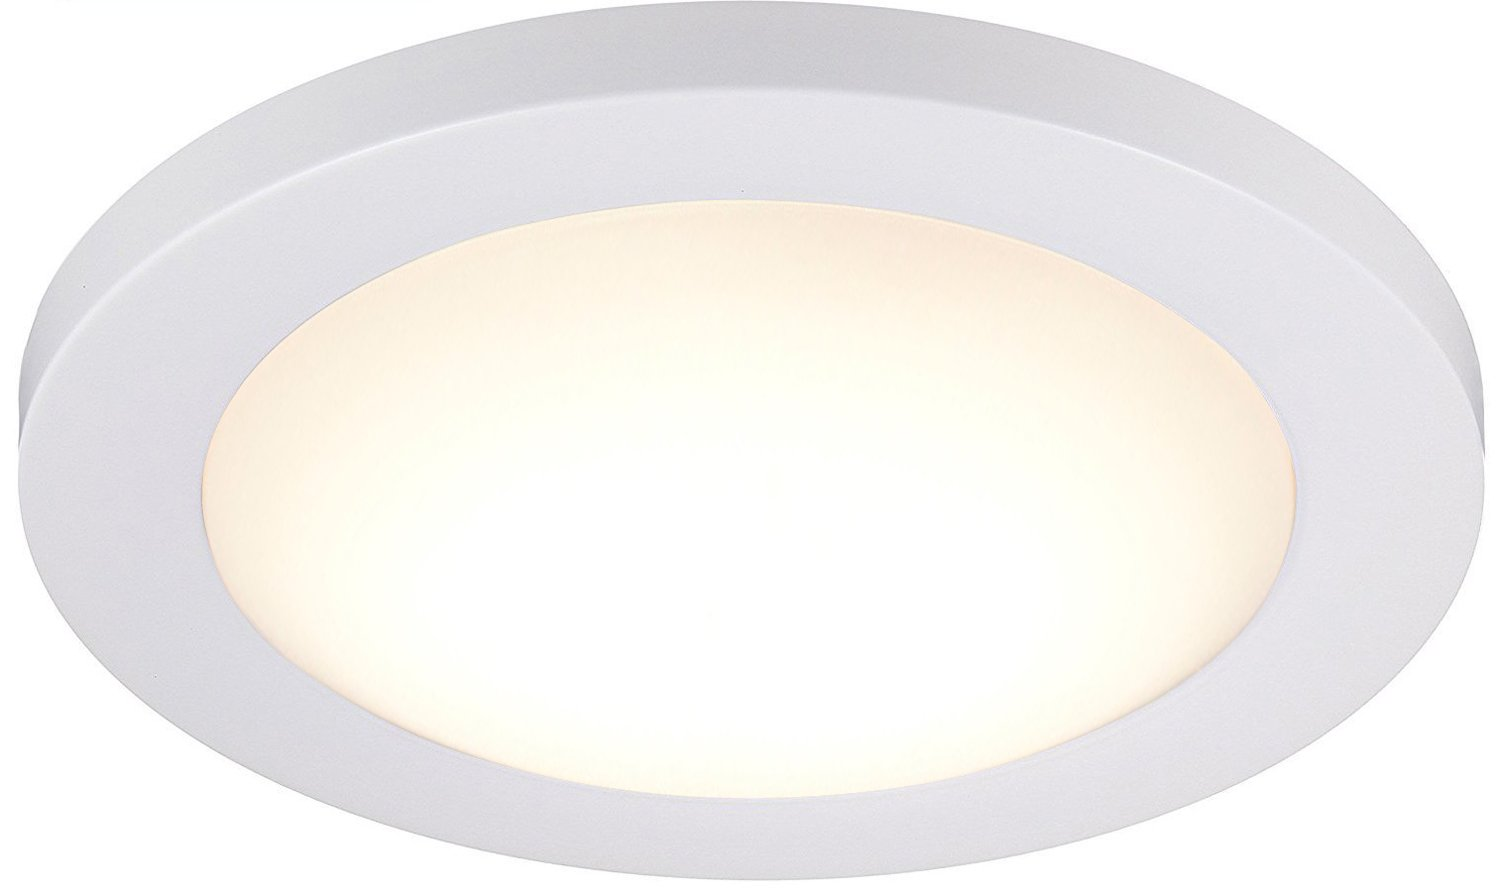 Cloudy Bay 12-inch LED Flush Mount Ceiling Light,3000K Warm White,Dimmable 17W 1100lm -120W Incandescent Equivalent,White Finish